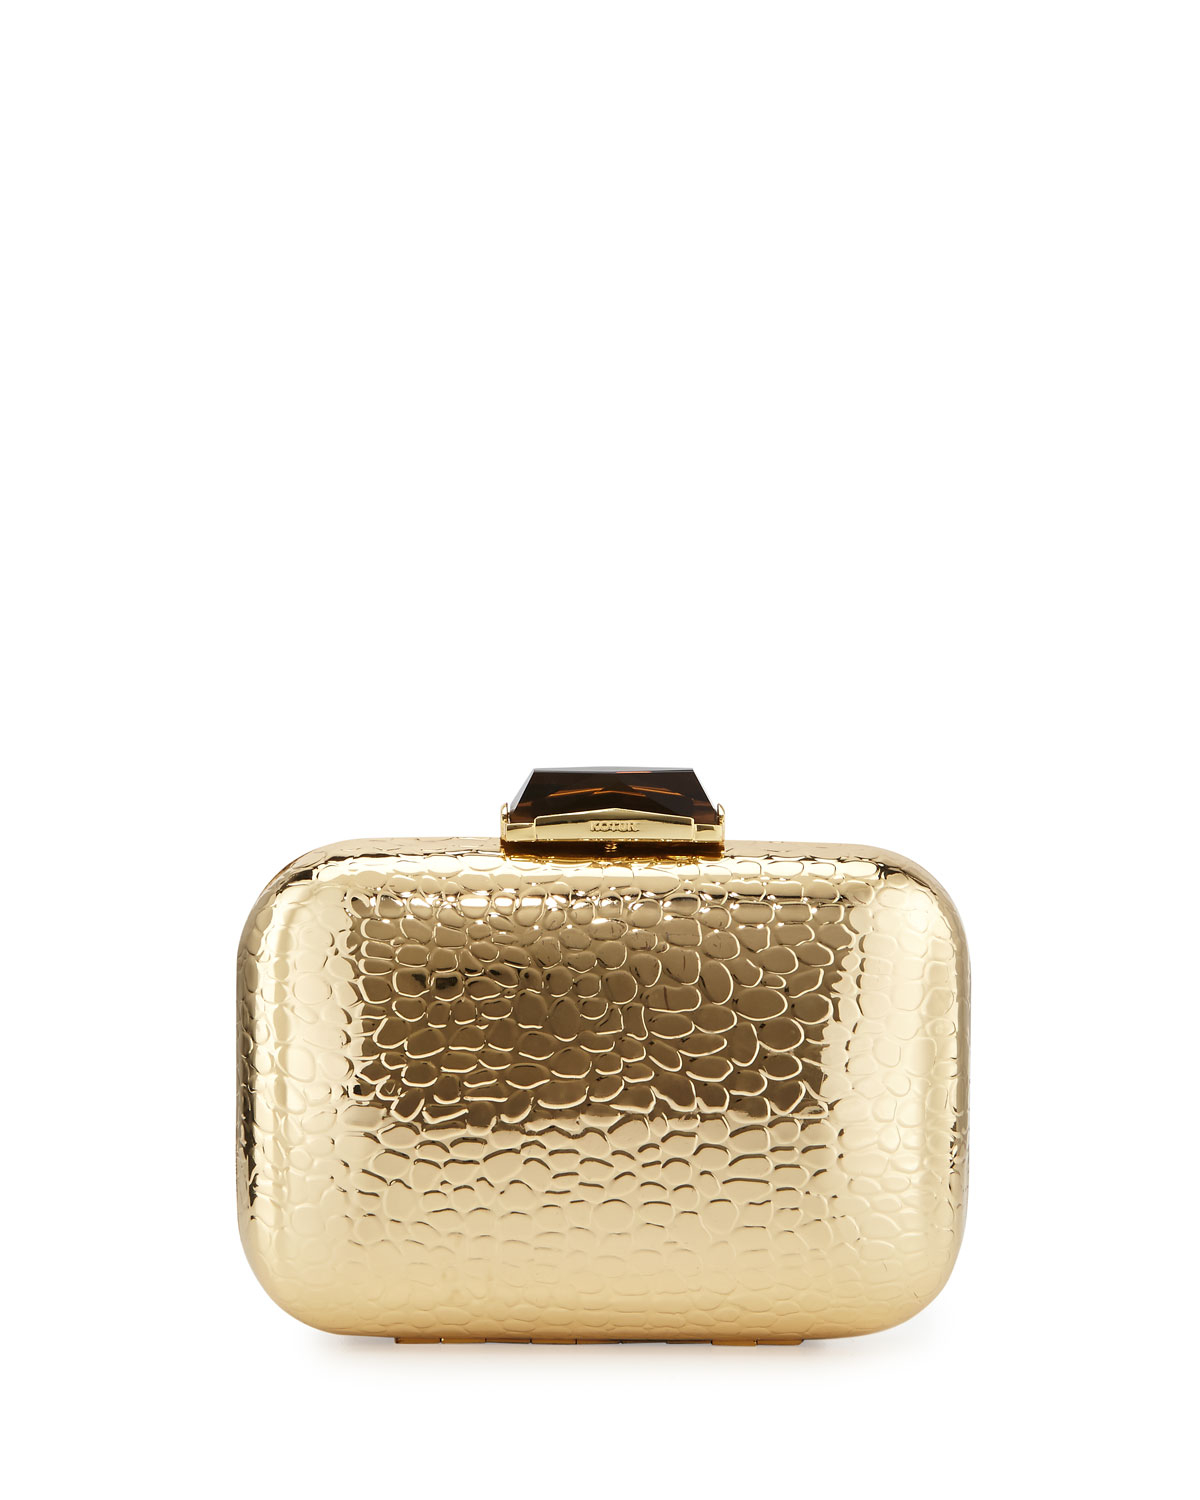 a1b198fe1521 Lyst kotur morley crocembossed box clutch bag gold in metallic jpg  1200x1500 Gold clutch bags